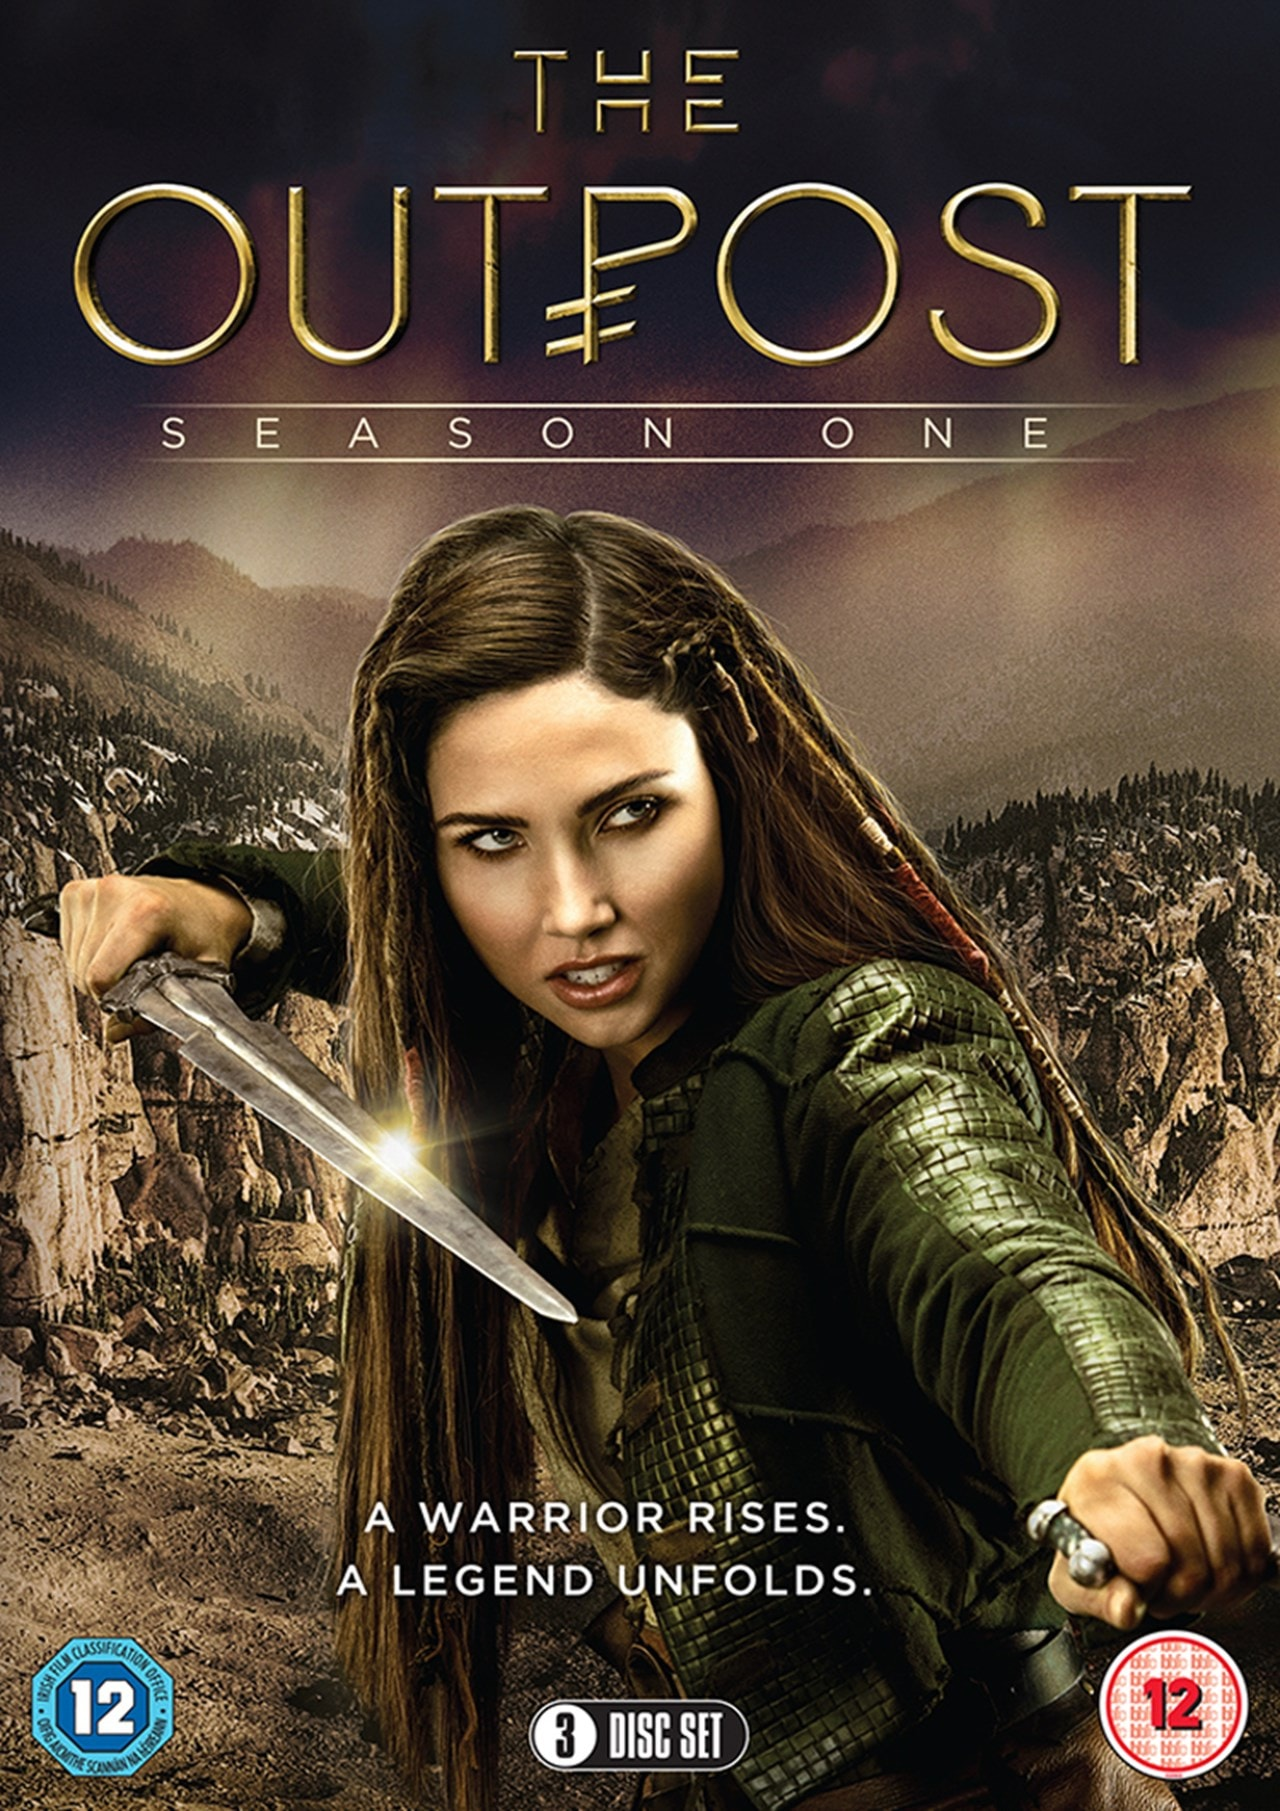 The Outpost: Season One - 1